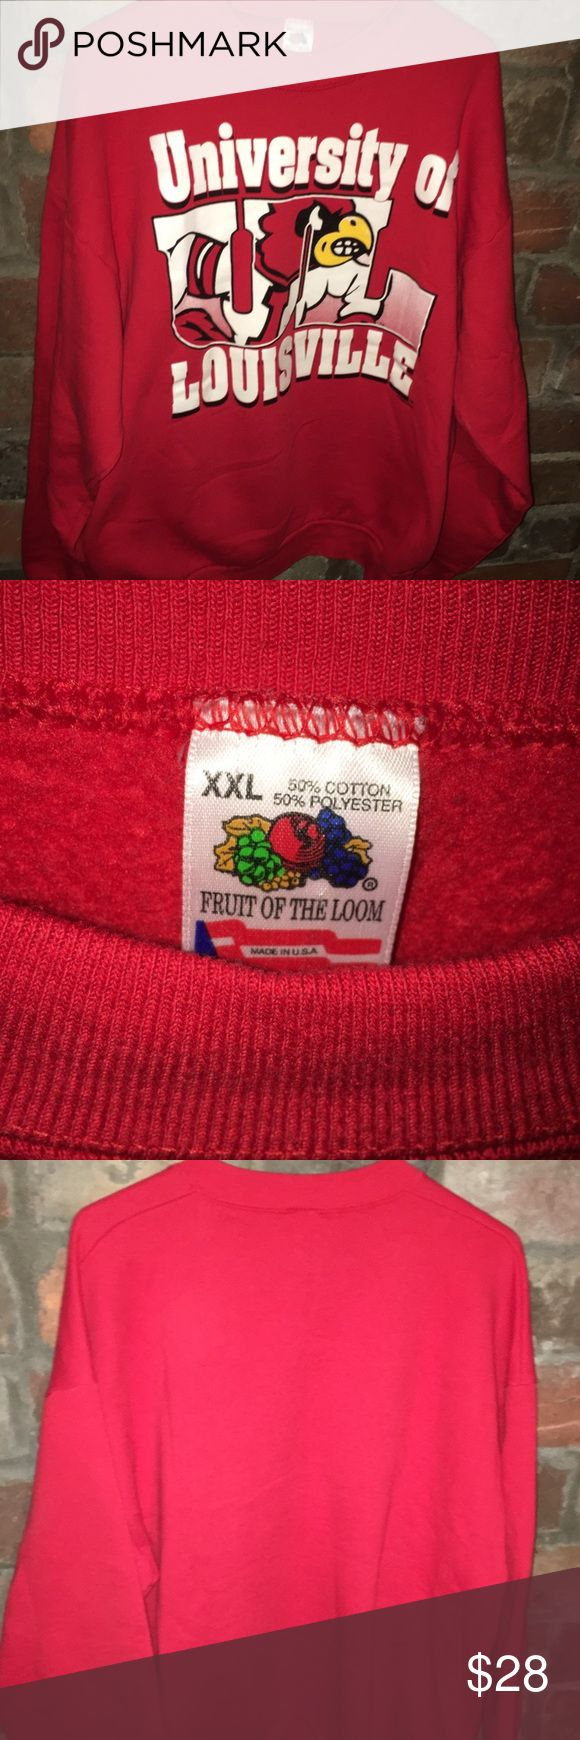 Vintage Louisville Sweatshirt Vintage University of Louisville Sweatshirt. Size XXL. Fits more like an XL. Good used condition. Gently worn... No rips, holes or stains. No pilling. Very clean! Fruit of the Loom Shirts Sweatshirts & Hoodies